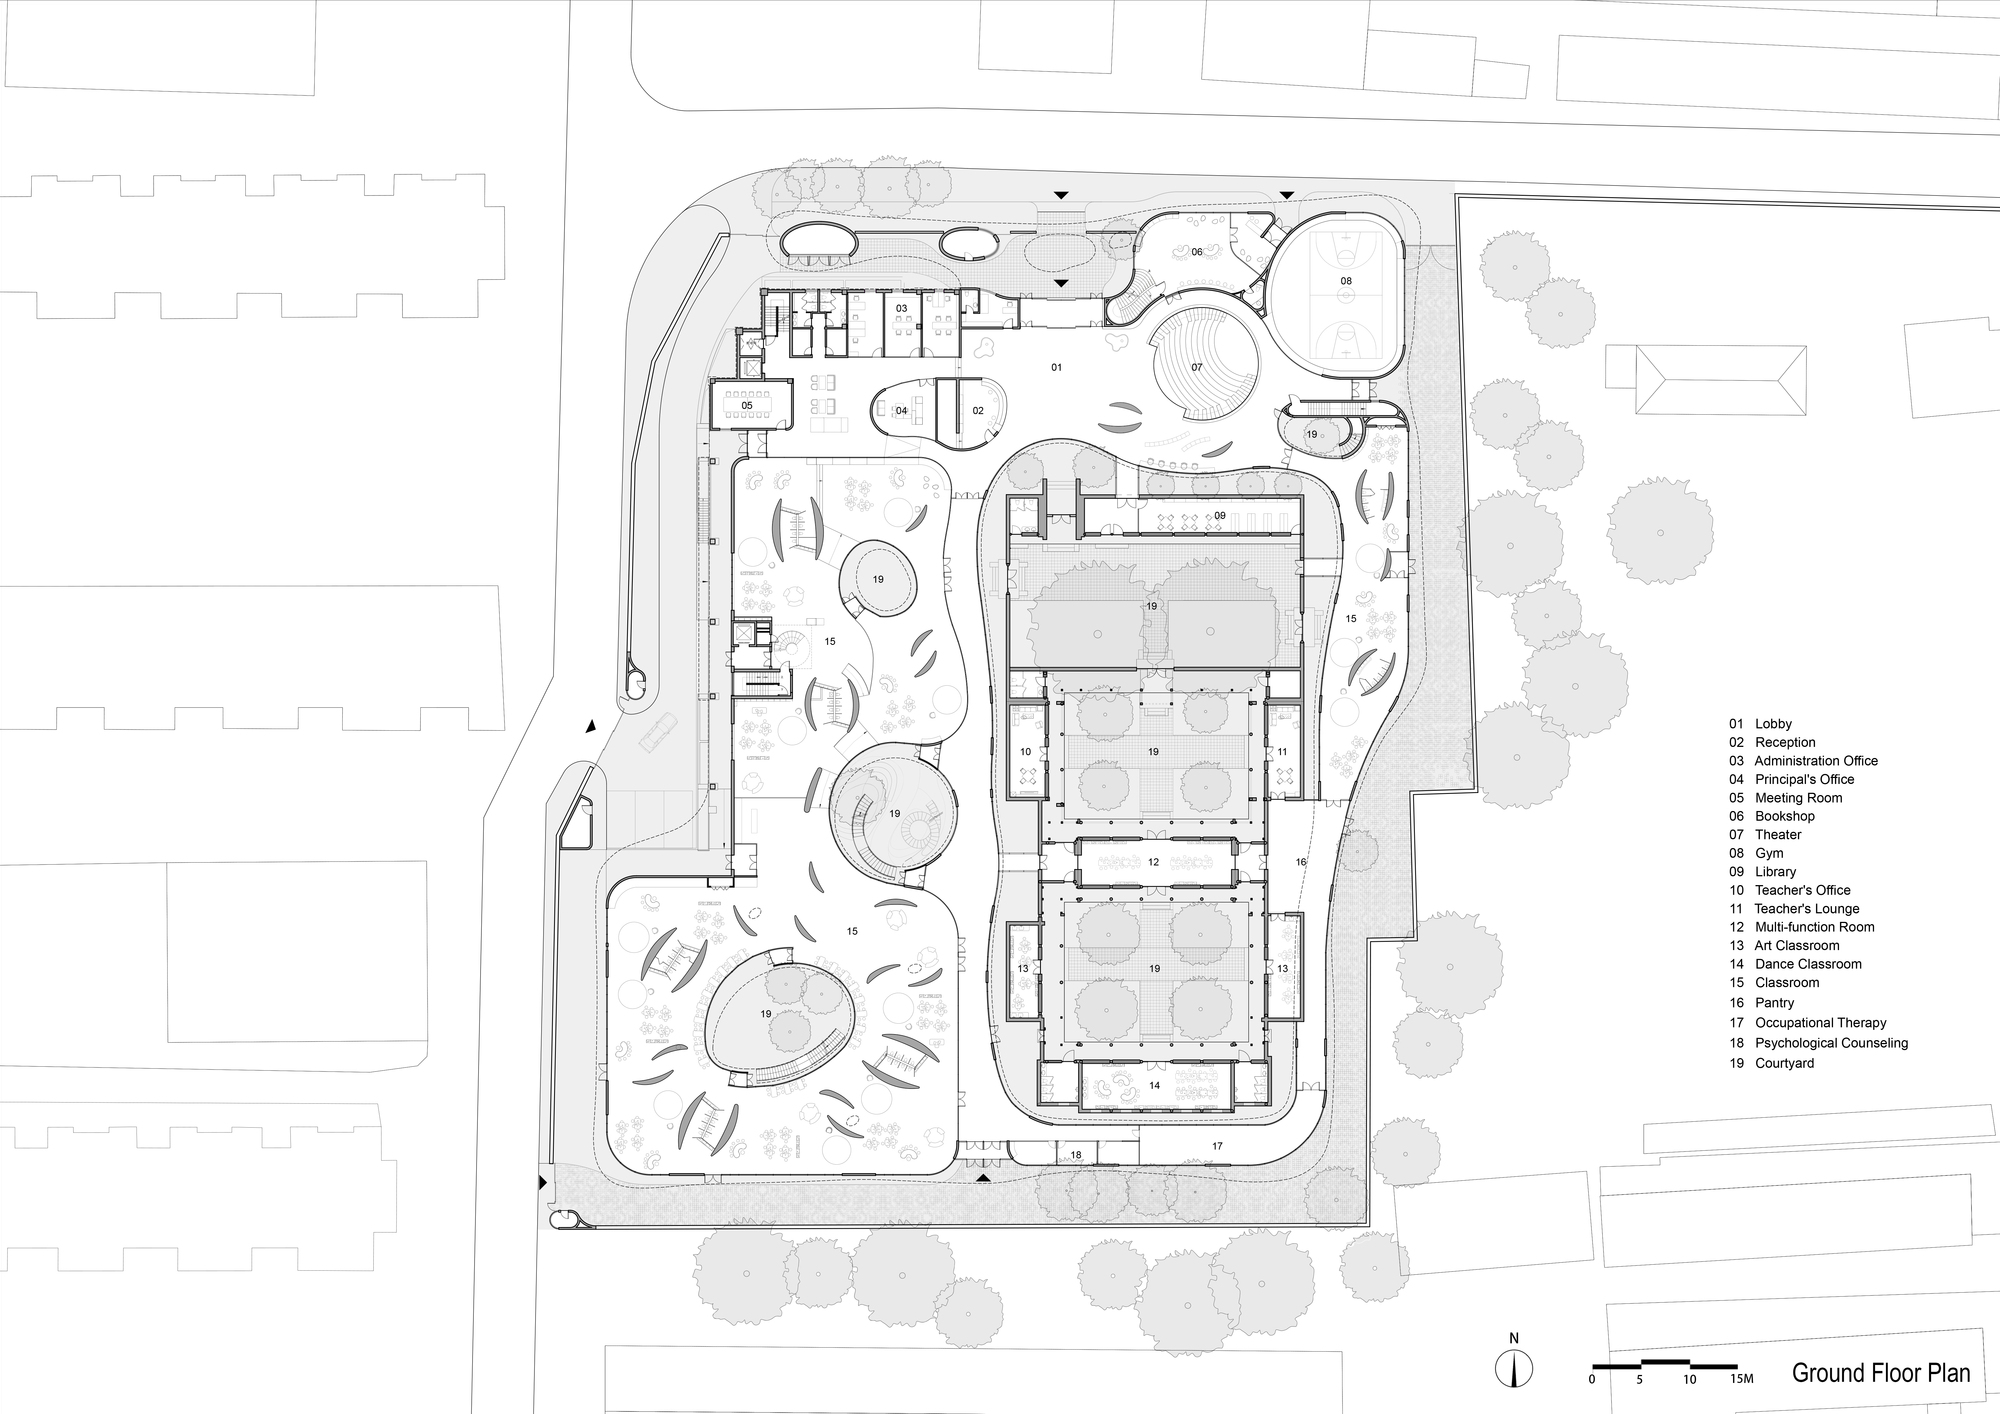 25_25_MAD_Courtyard_Kindergarten_1F_plan.jpg